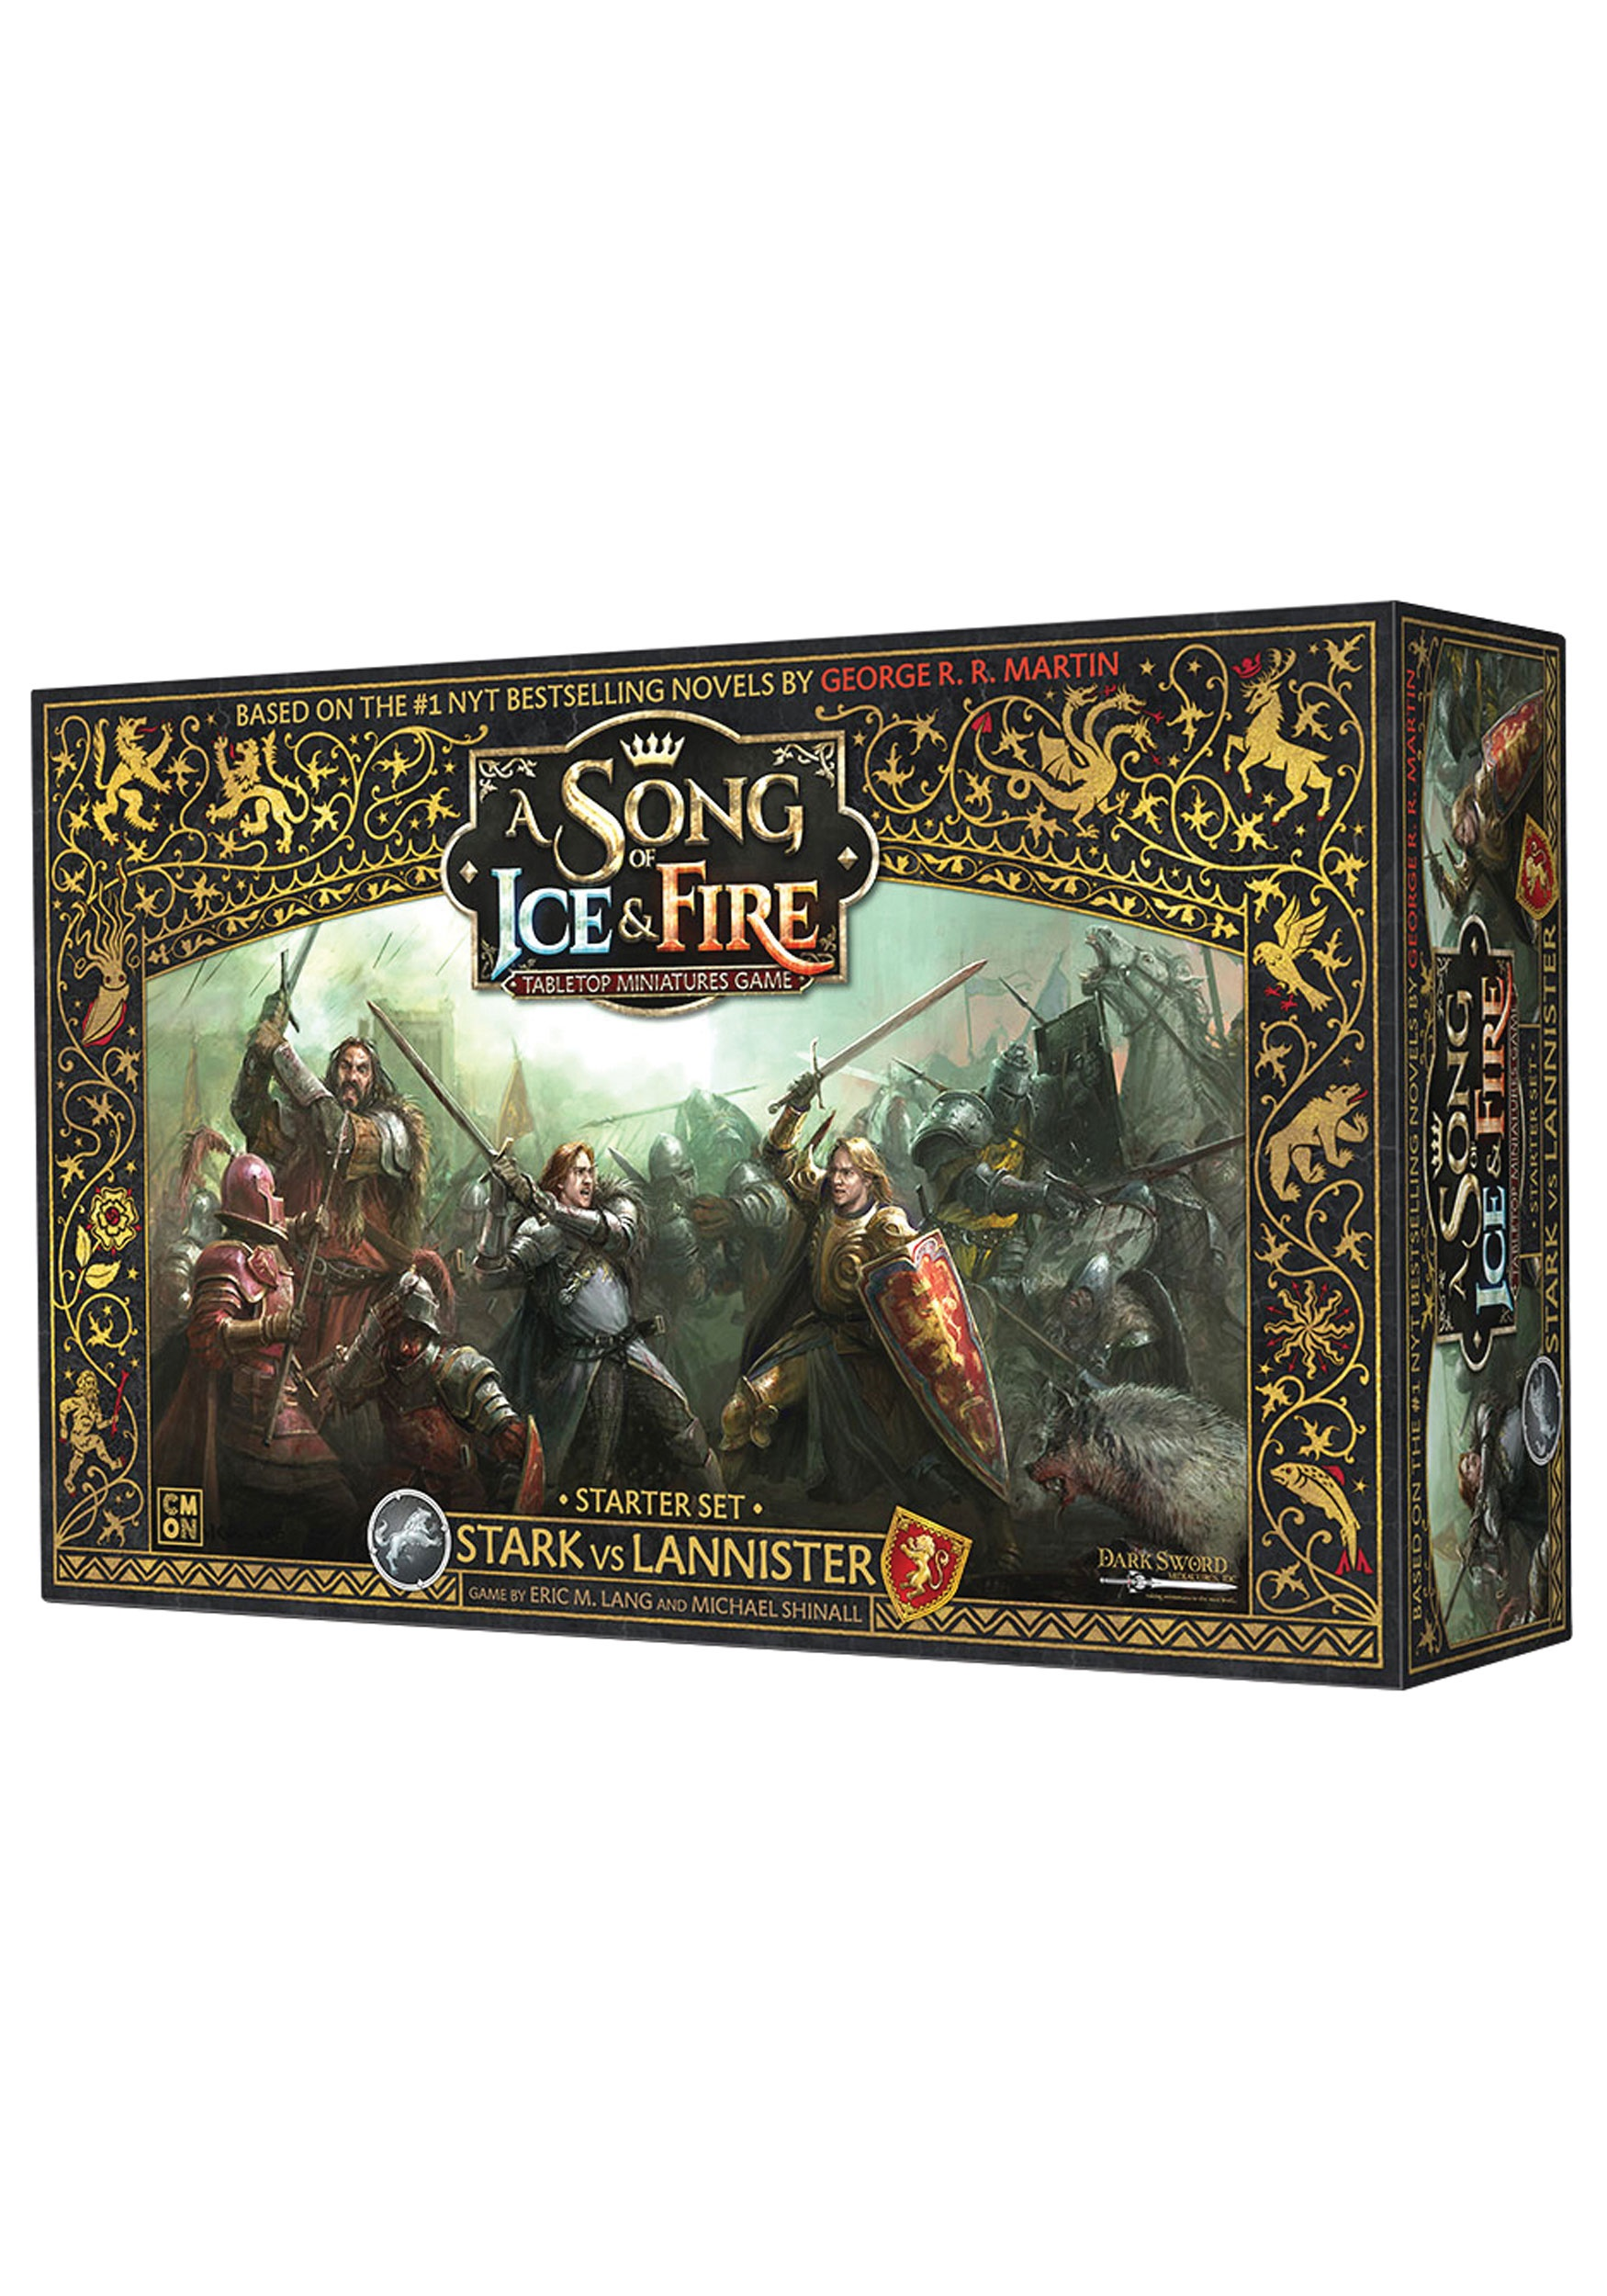 A_Song_of_Ice_&_Fire:_Tabletop_Miniatures_Game_Starter_Set